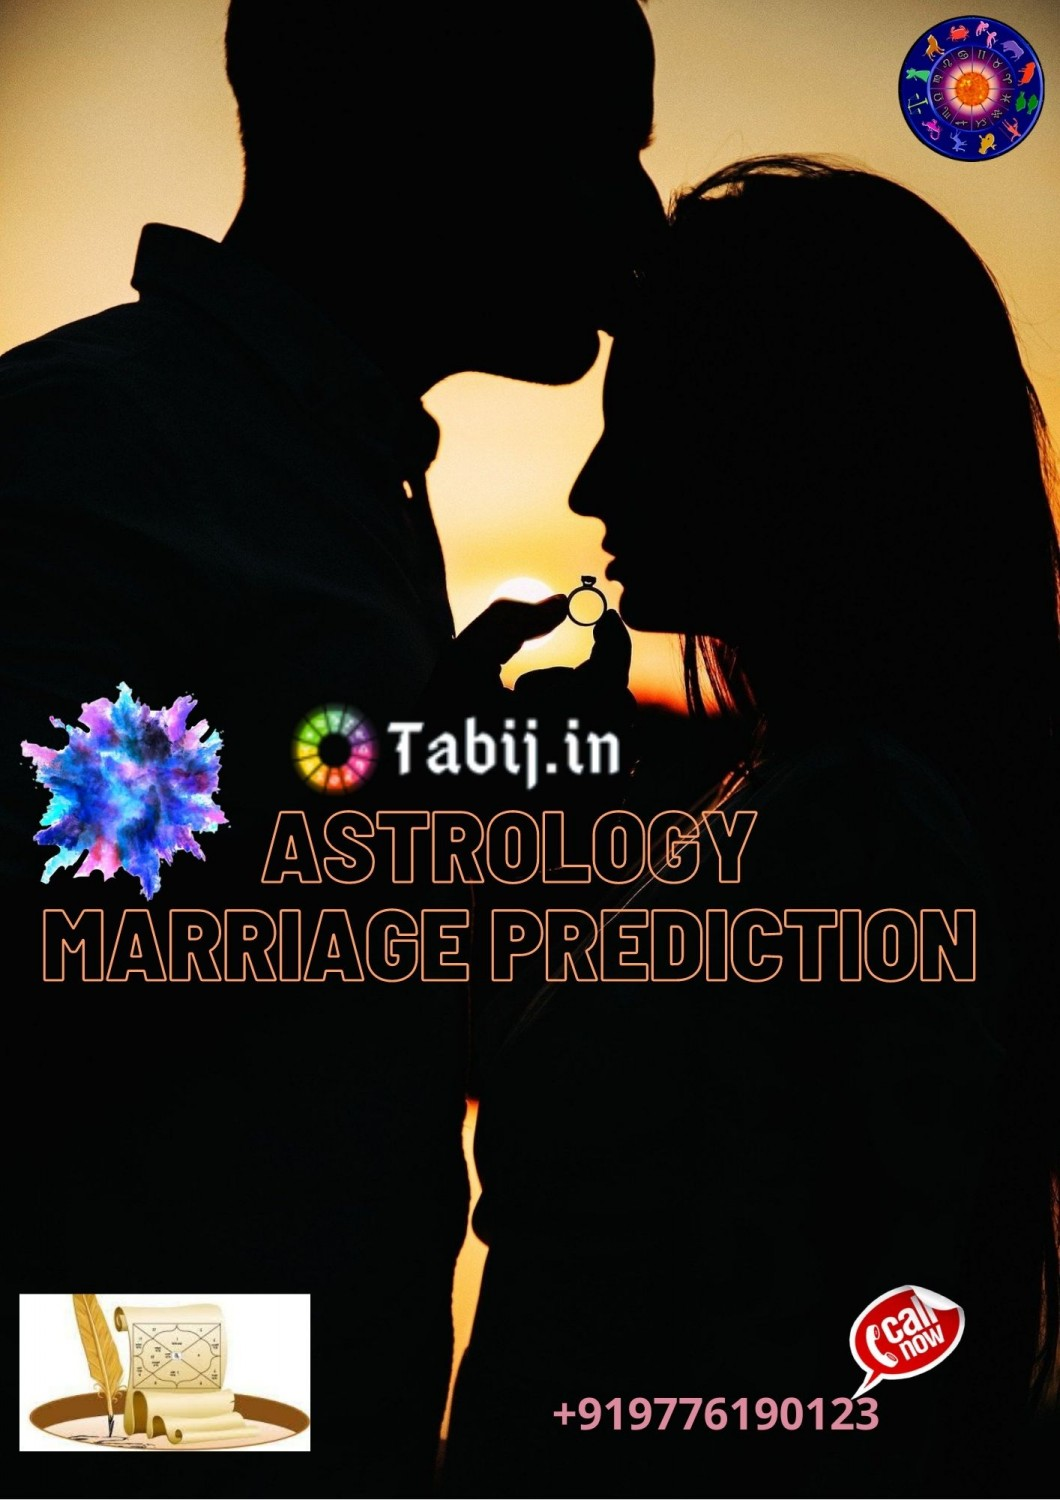 Astrology marriage prediction: The Secret Astrological